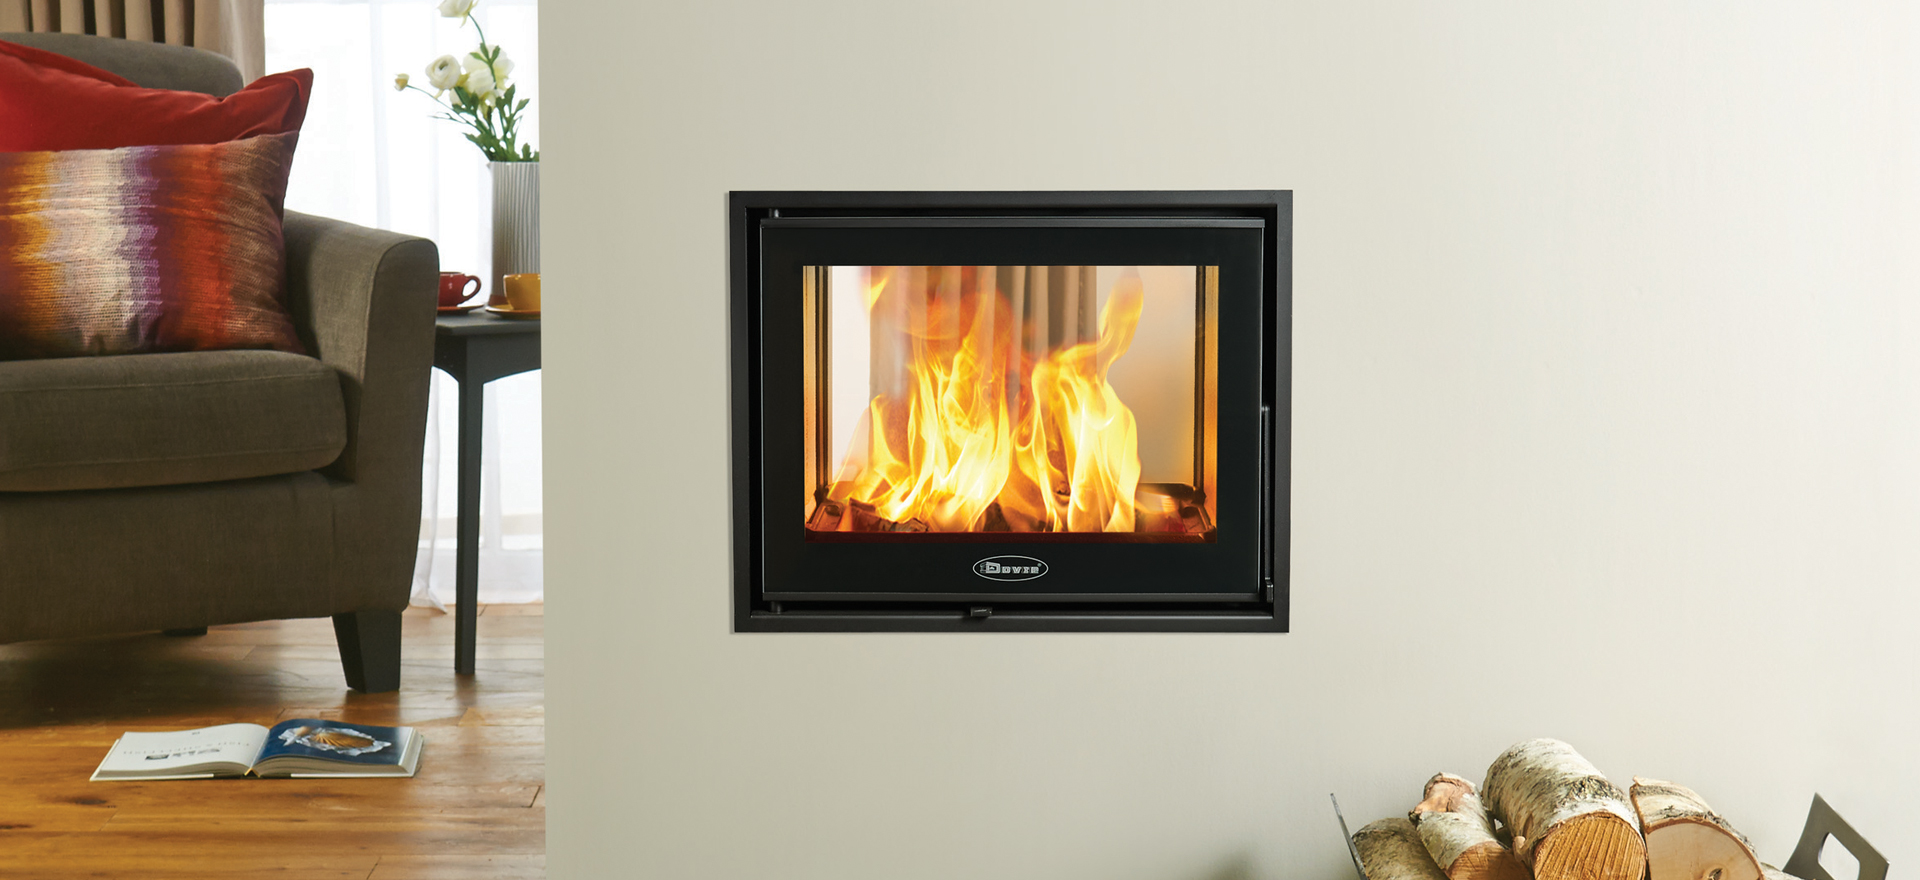 Insert Double Combustion Dovre Zen 102 Wood Burning Fires